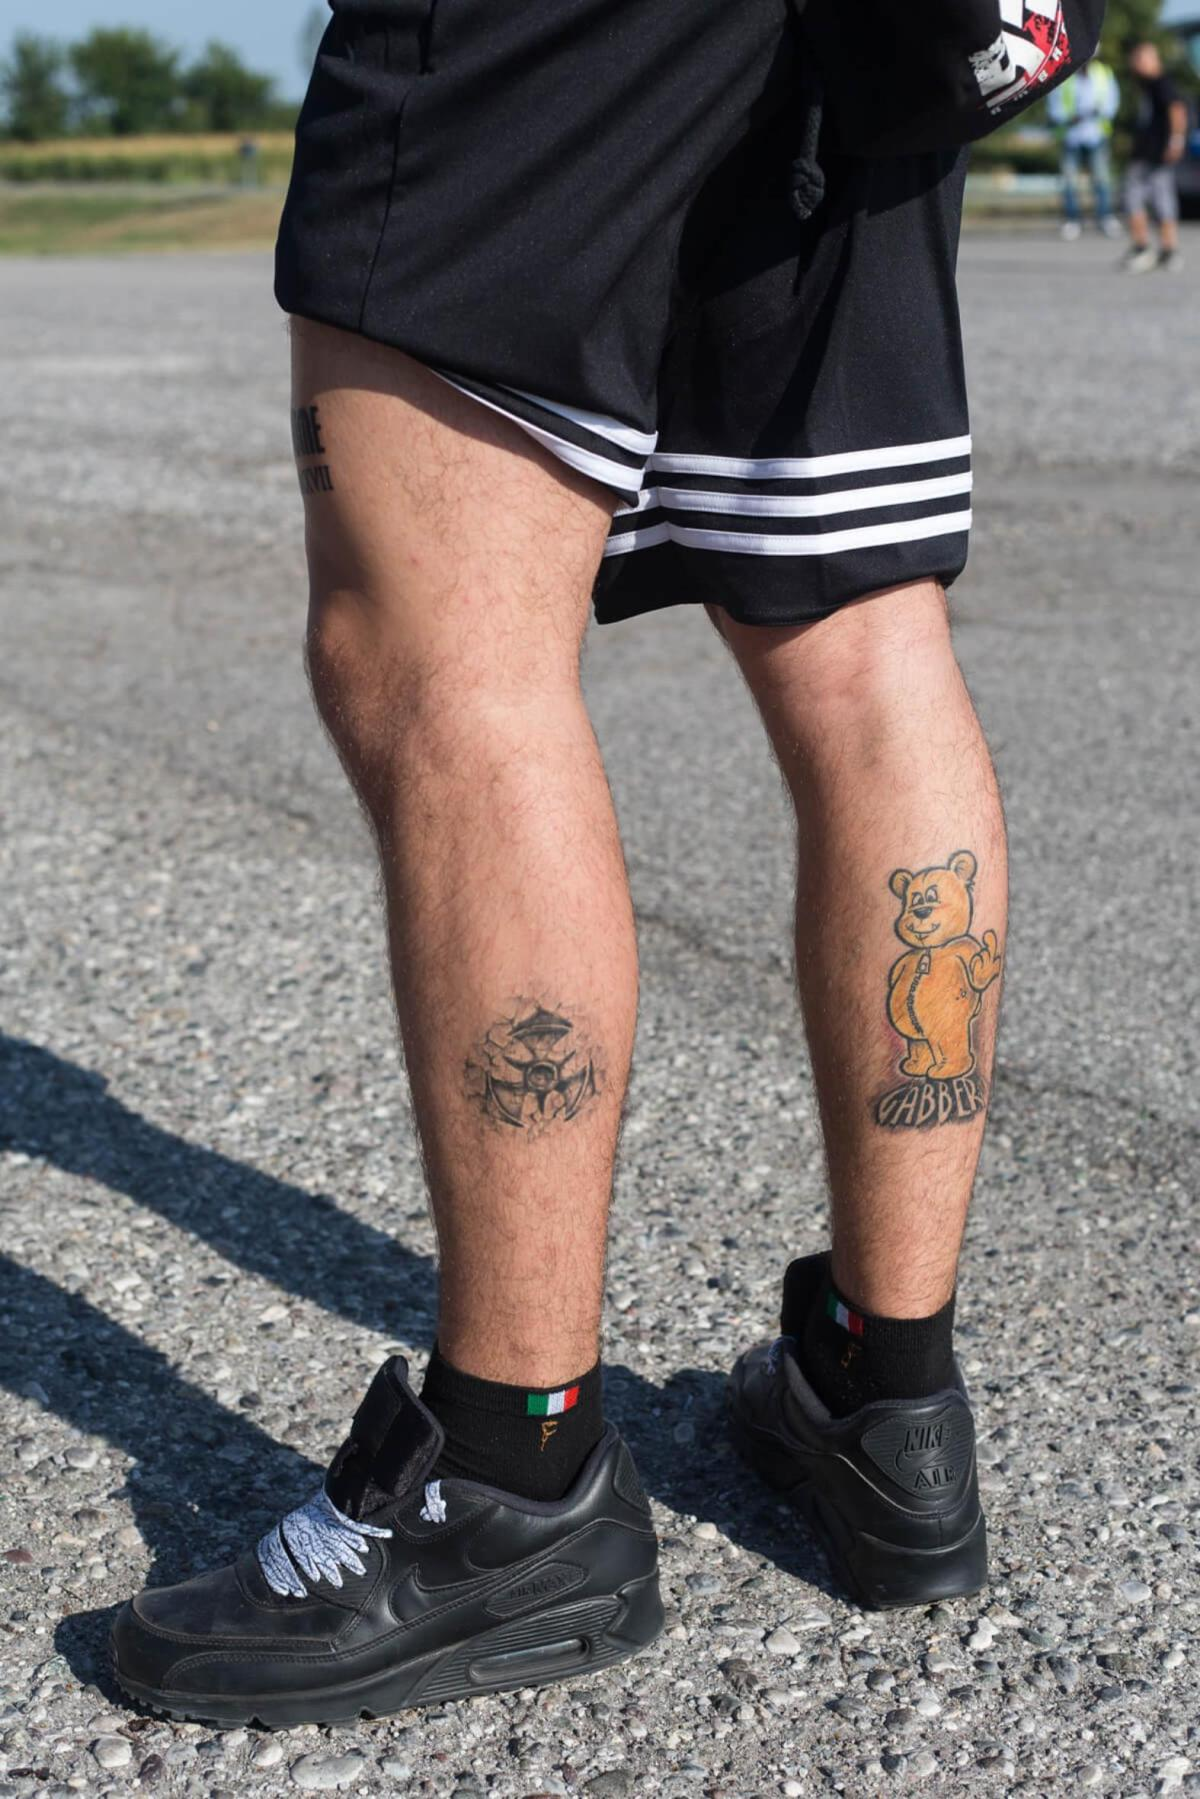 1507862421351 1507203033988 259965 A visitor of the 10 year anniversery of E Mission festival Left leg shows a the logo of Dutch Dominator festival right shows the logo of Rotterdam label Forze Records 062e74 original 1506944227 2 1